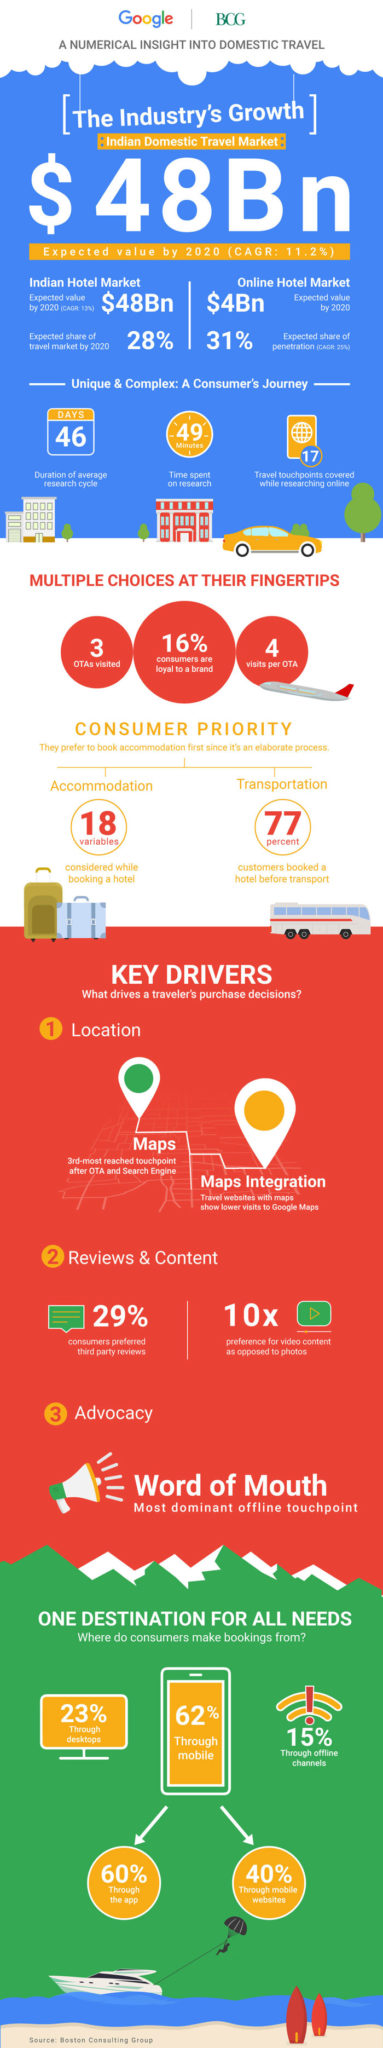 google india-bcg-online travel-indian-2020